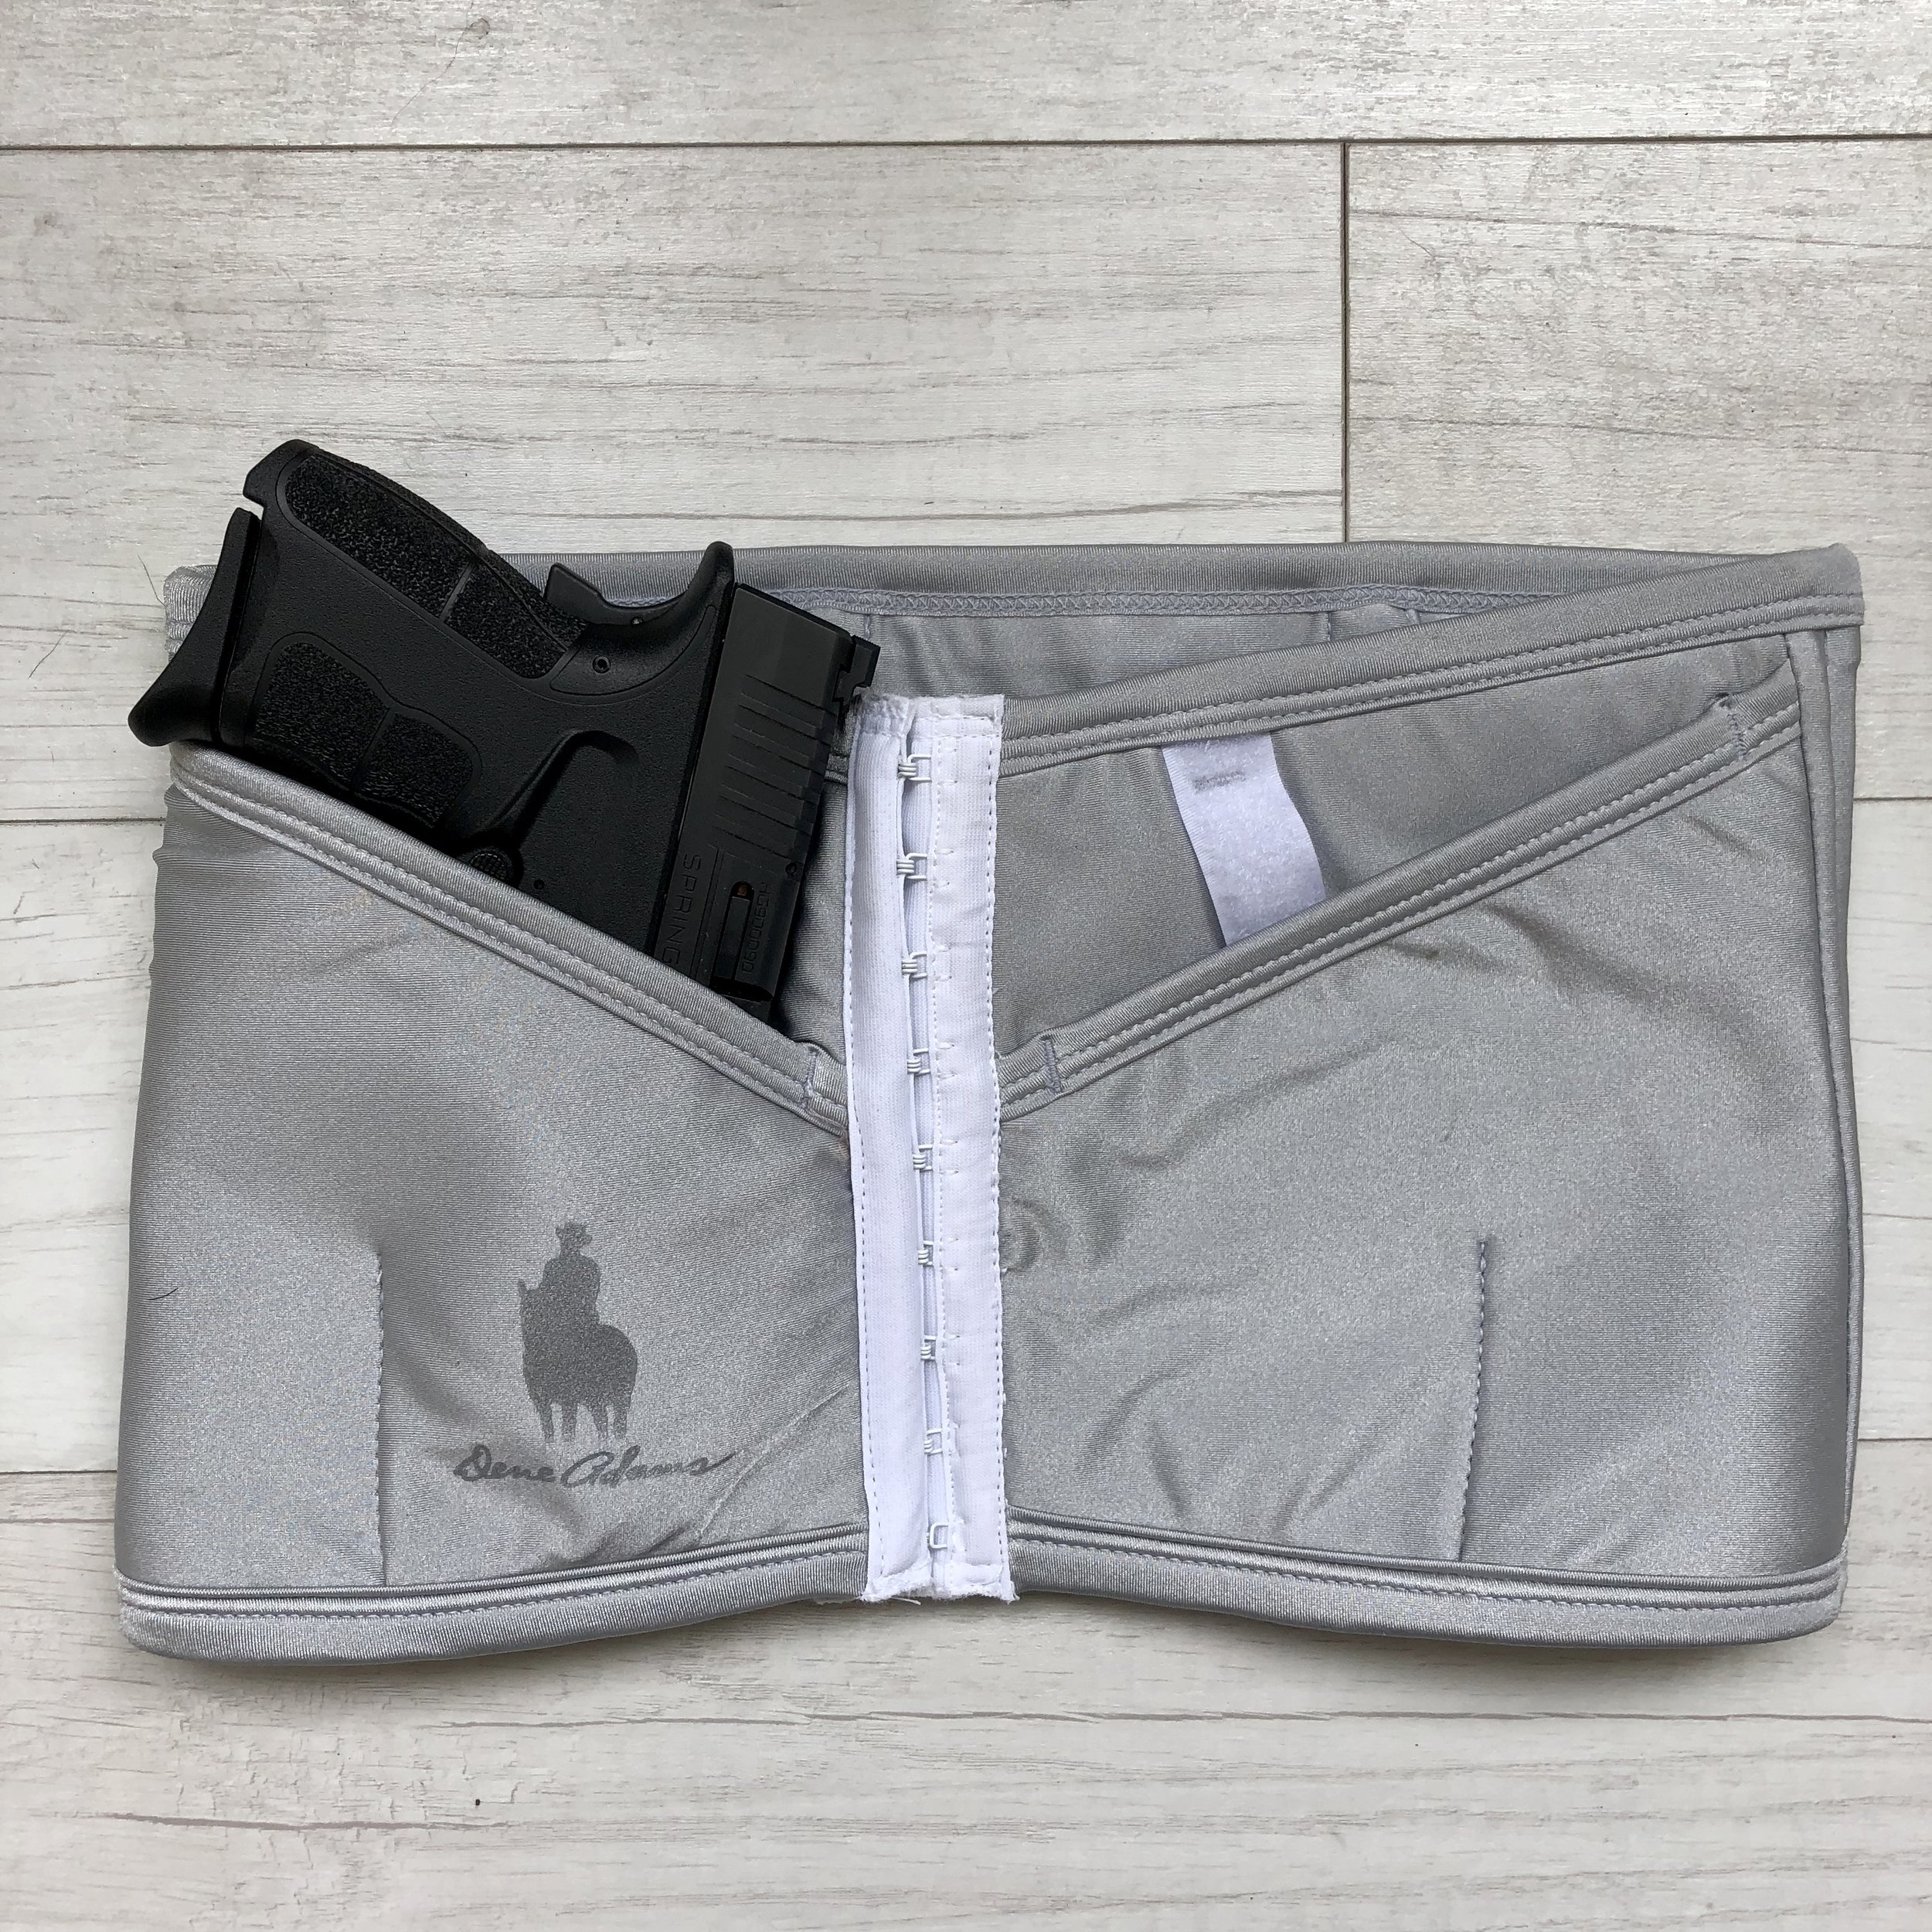 Petite Silver Corset Holster (Medium Compression) from Dene Adams, $109.99